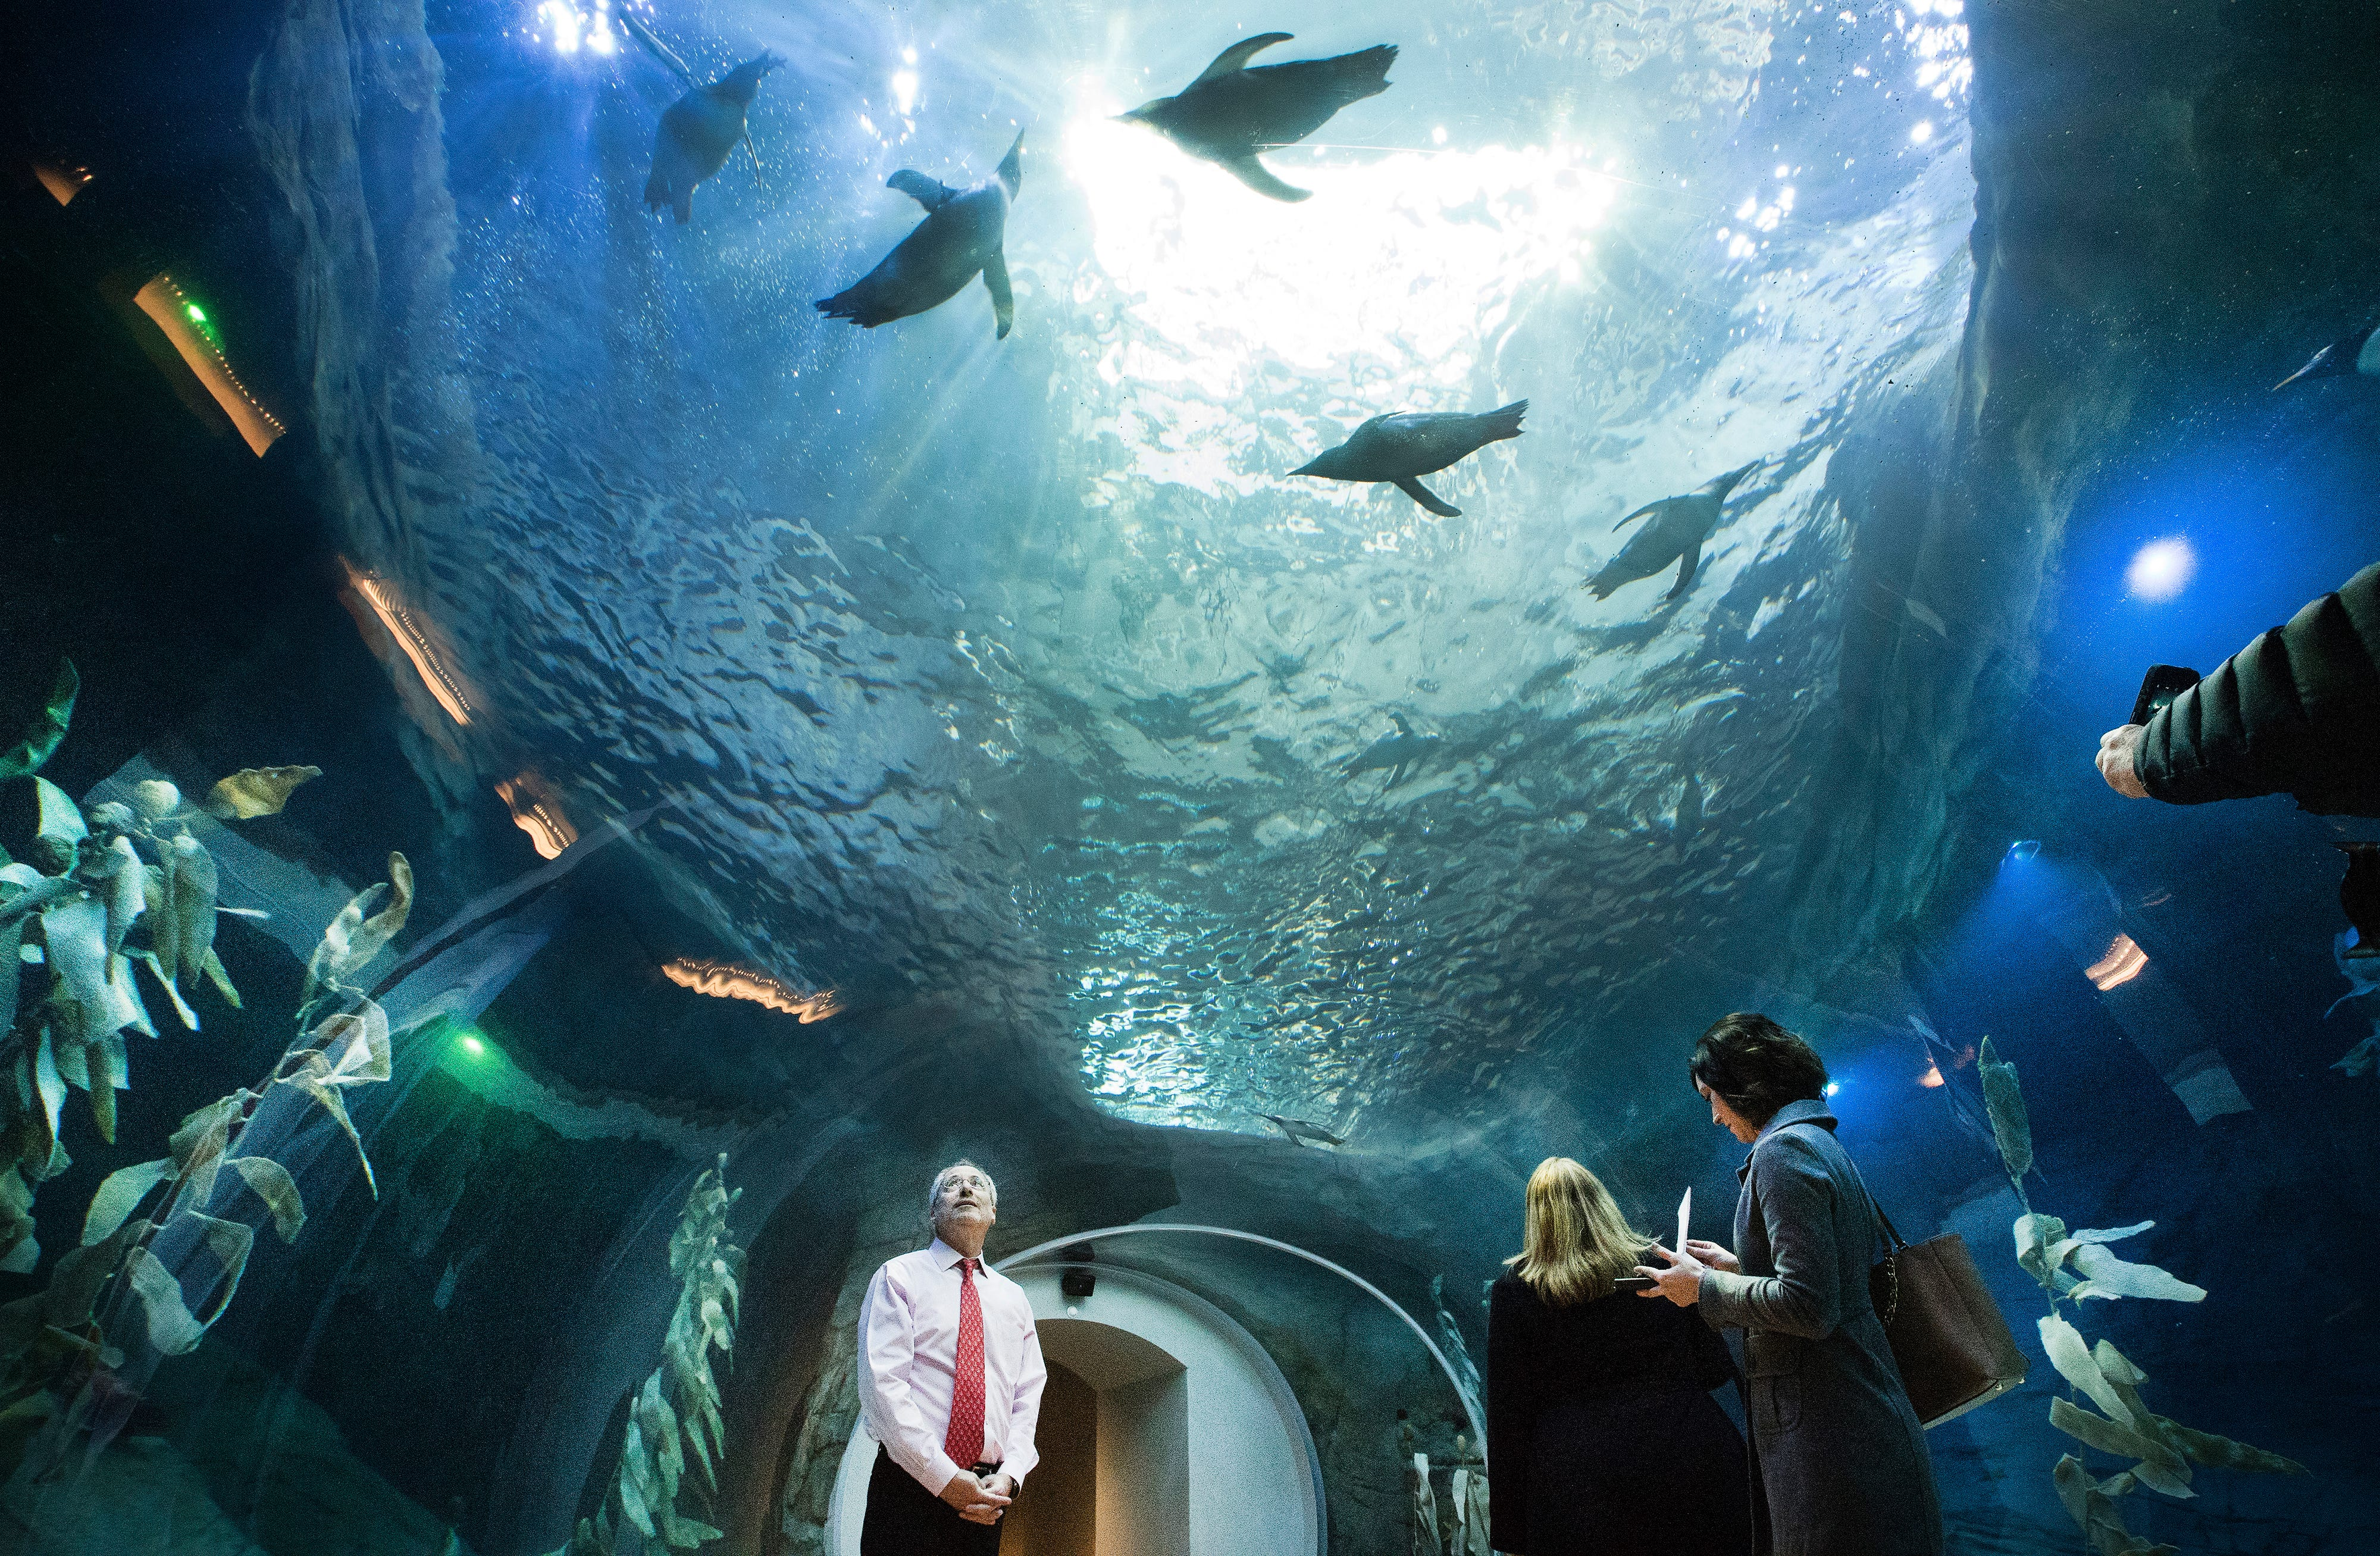 Detroit Zoo boosts economy by $167M in 2018, study finds